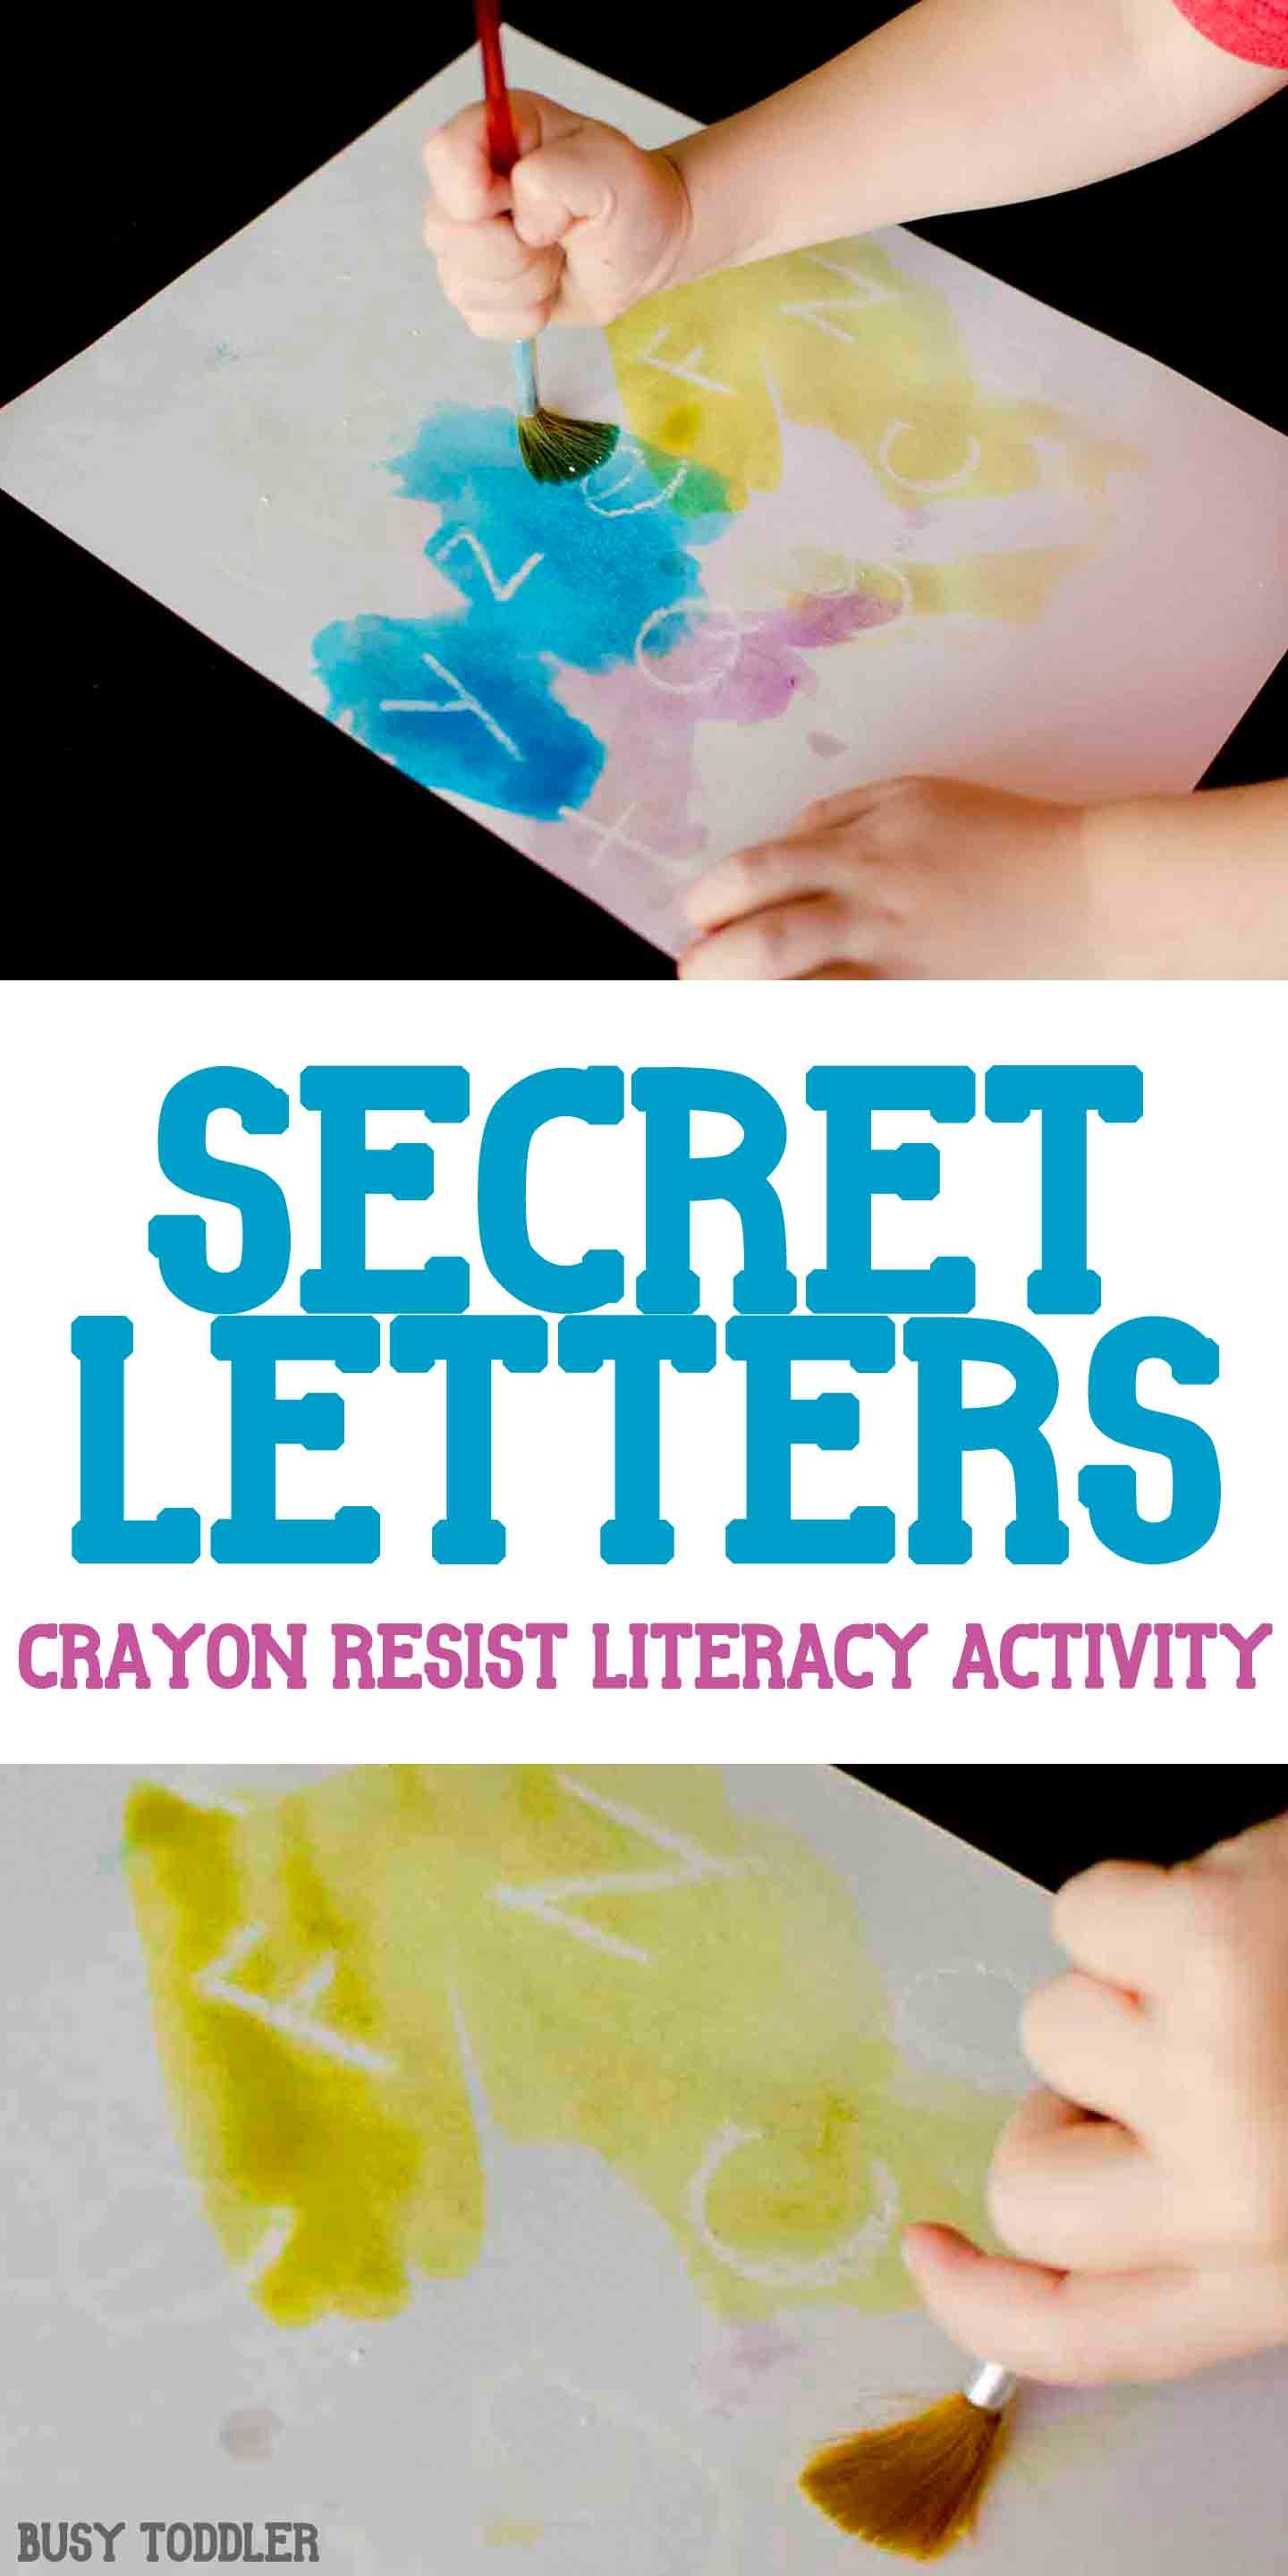 secret letters activity an awesome crayon resist literacy activity thats so much fun a quick and easy indoor activity for toddlers and preschoolers